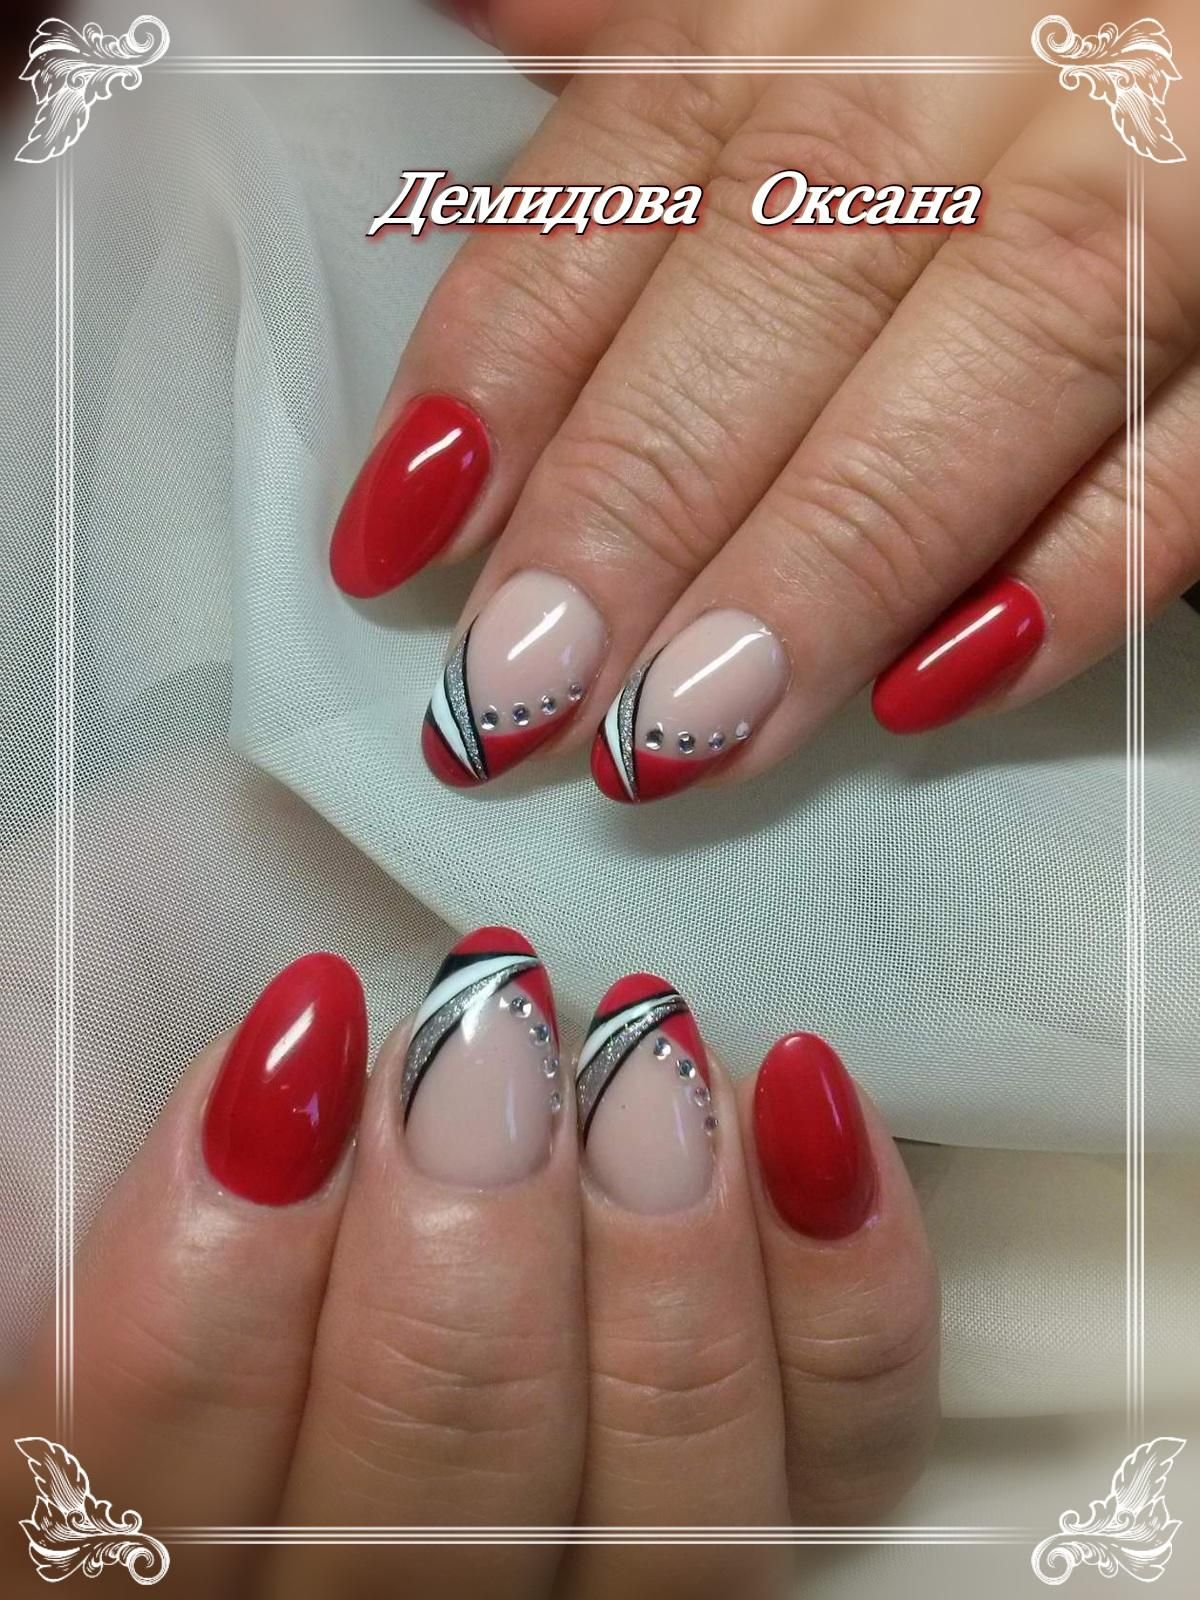 Pin by Claudia Estupiñan on uñas | Pinterest | Manicure, Nail french ...